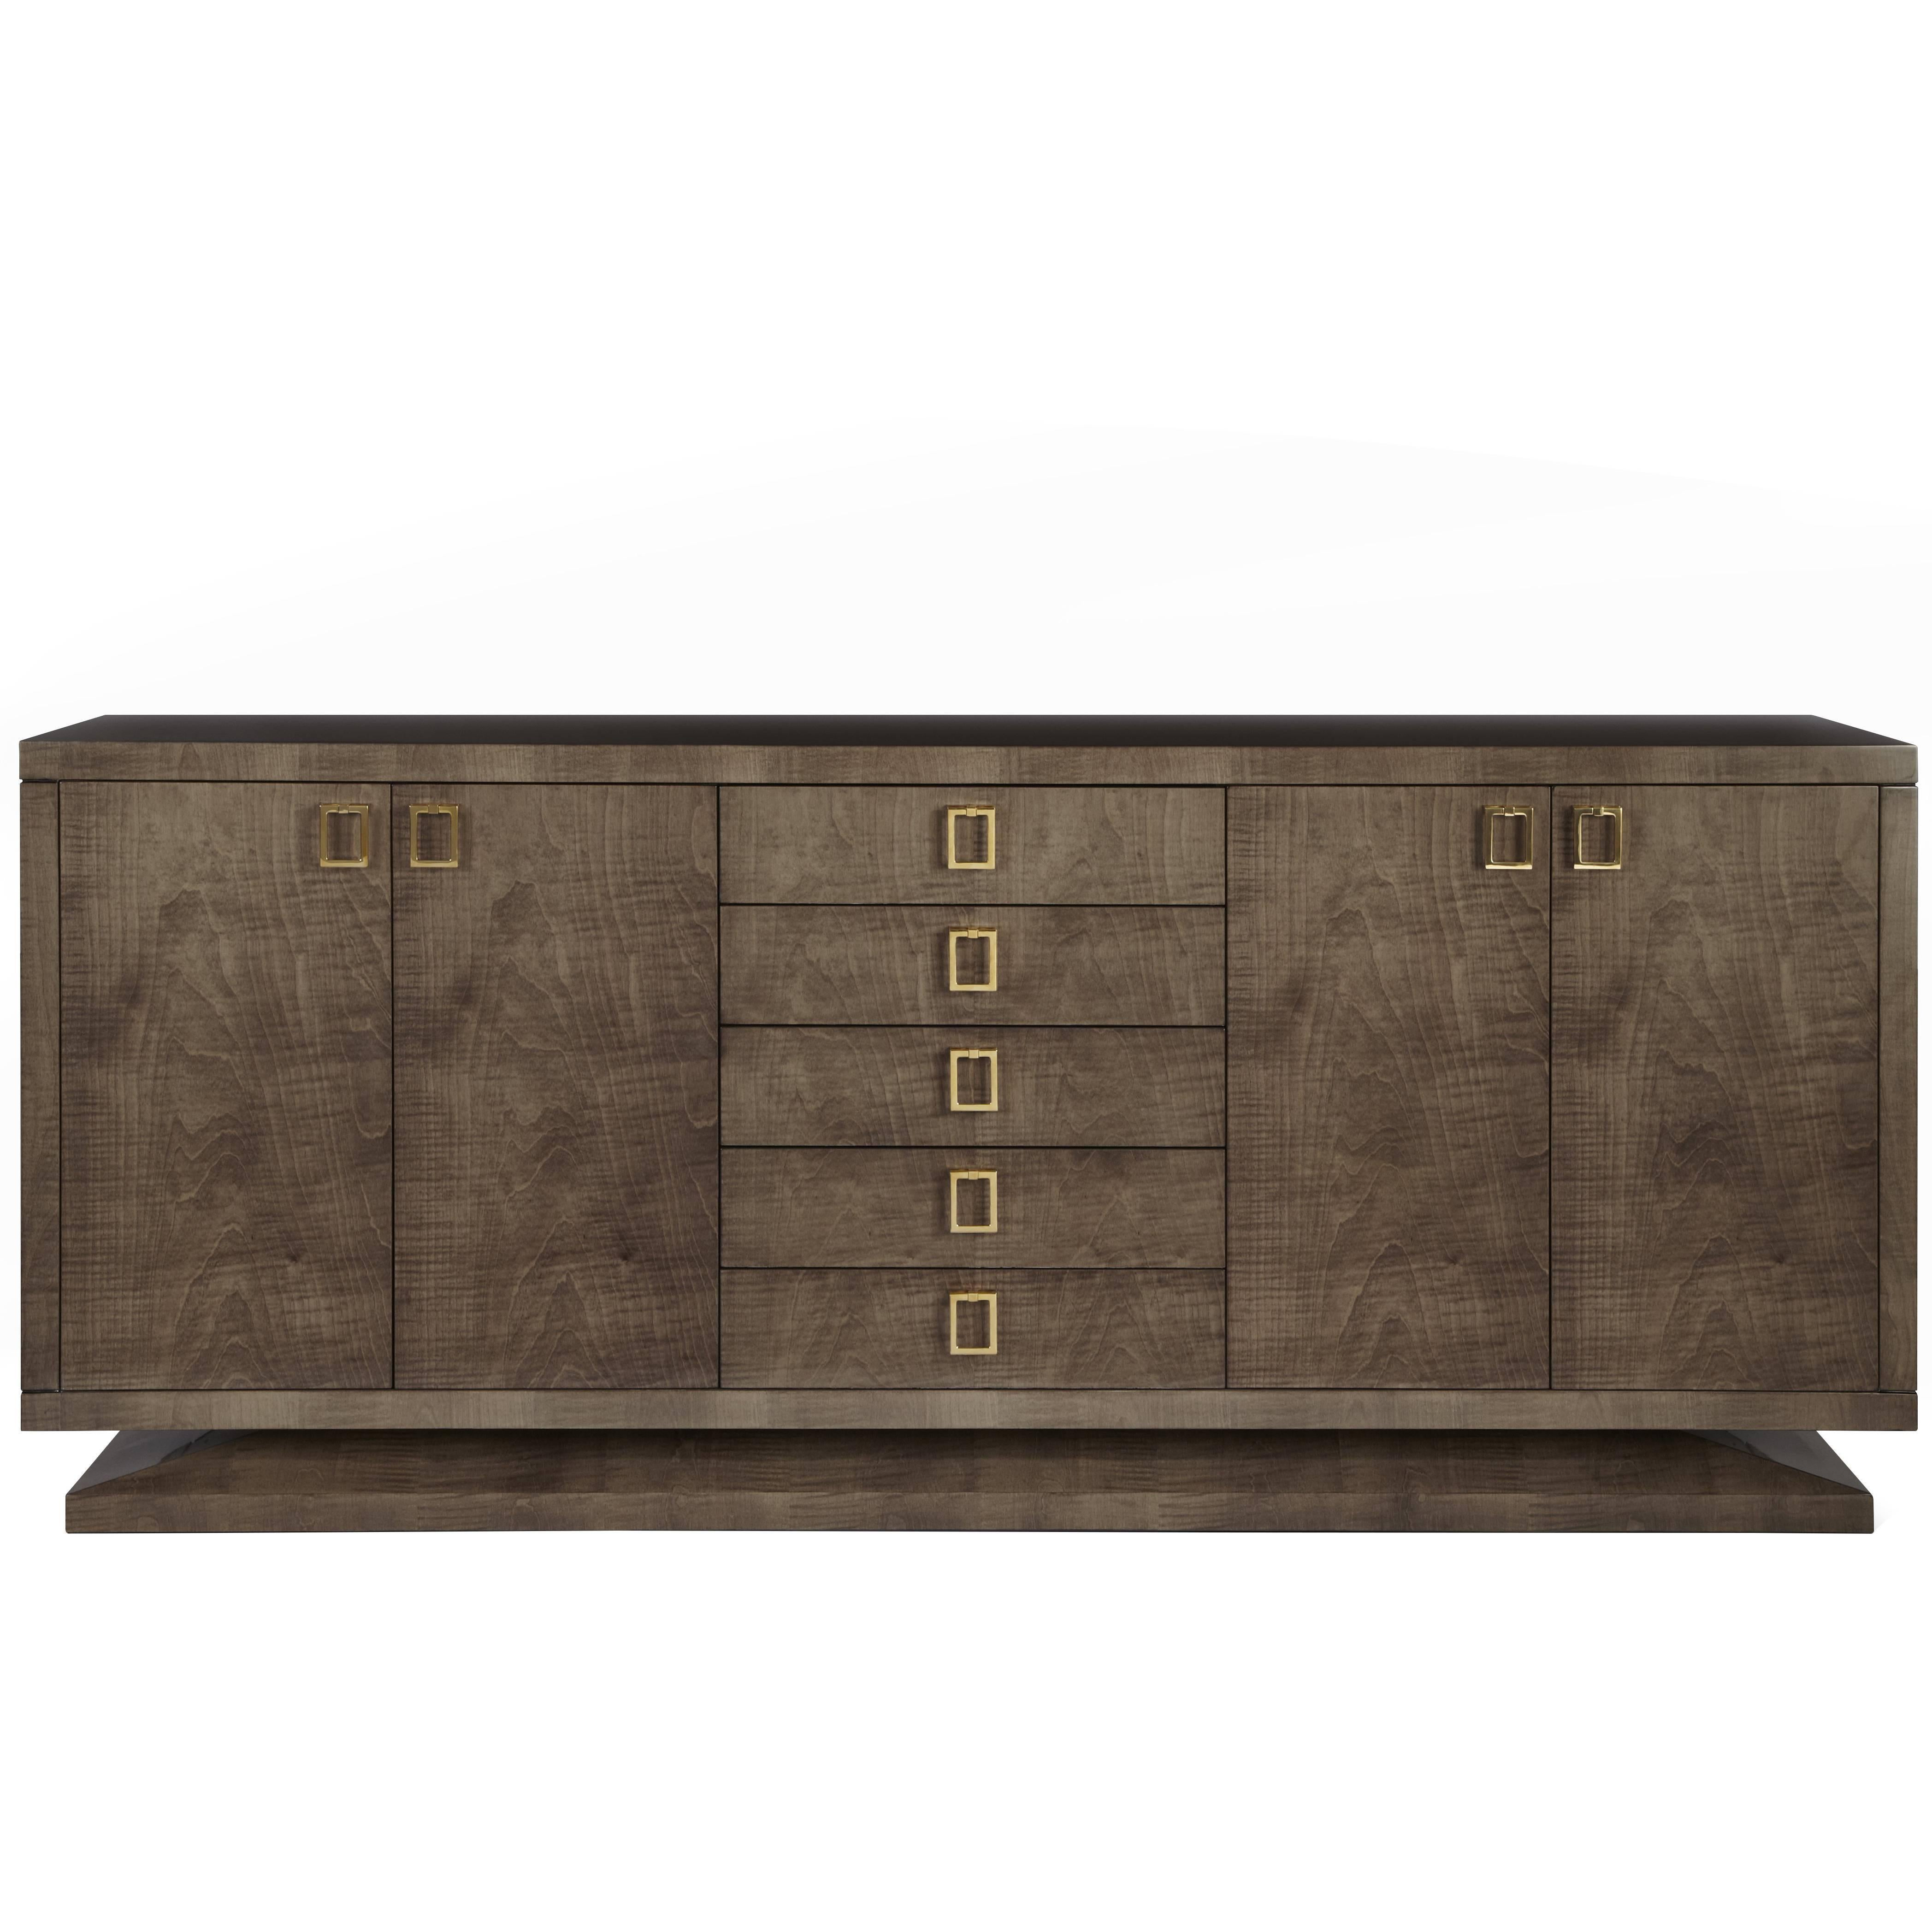 Davidson's Contemporary, Montpelier Side Cabinet, Sycamore Dusk & Brass Handles